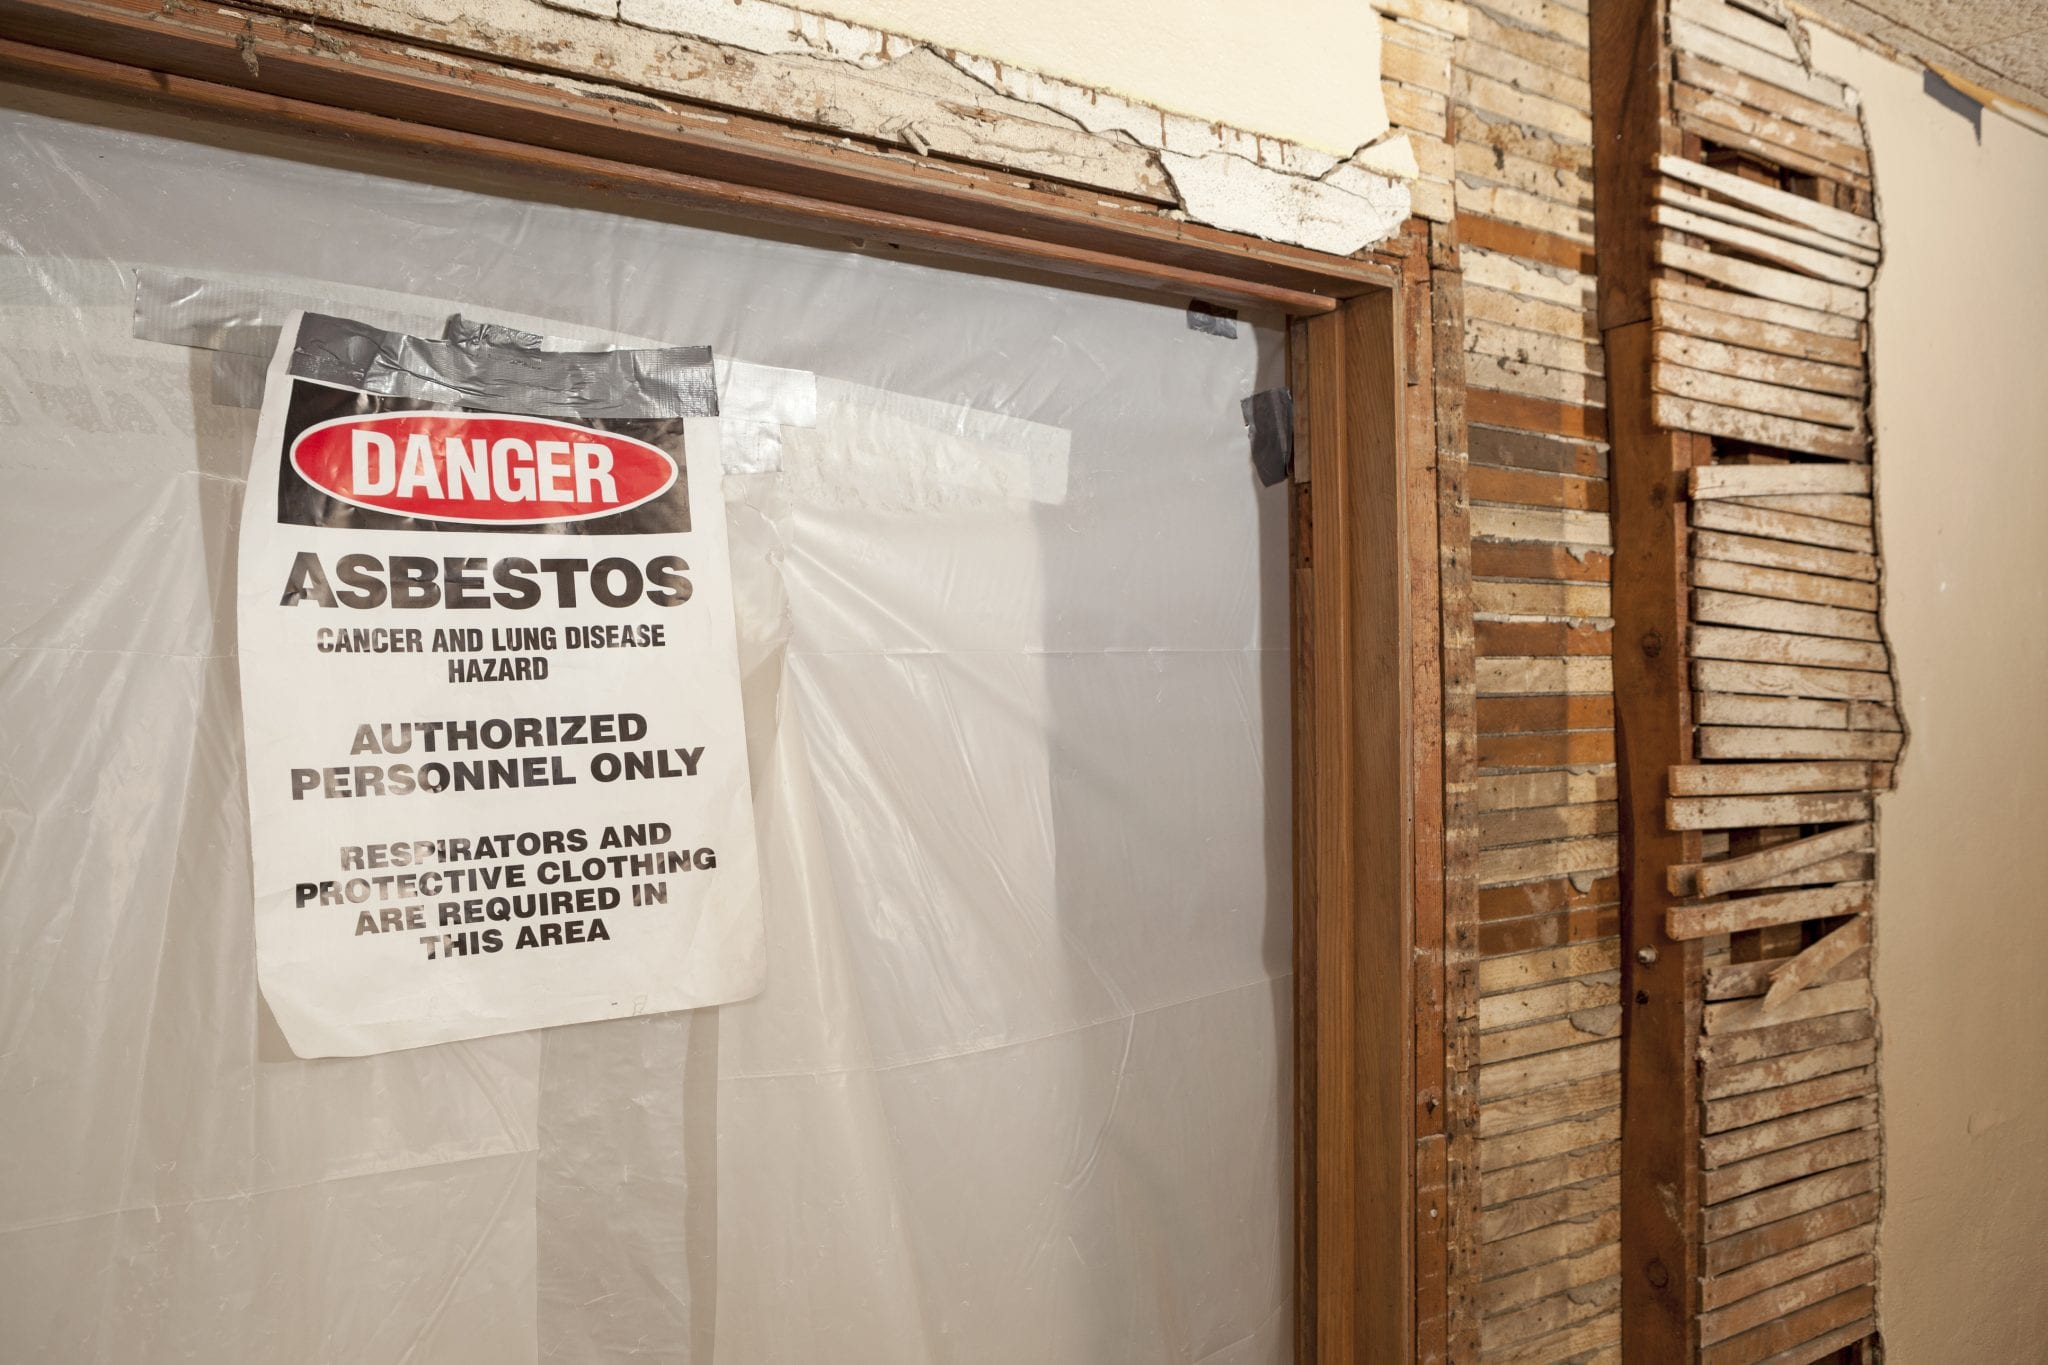 Asbestos remediation NYC